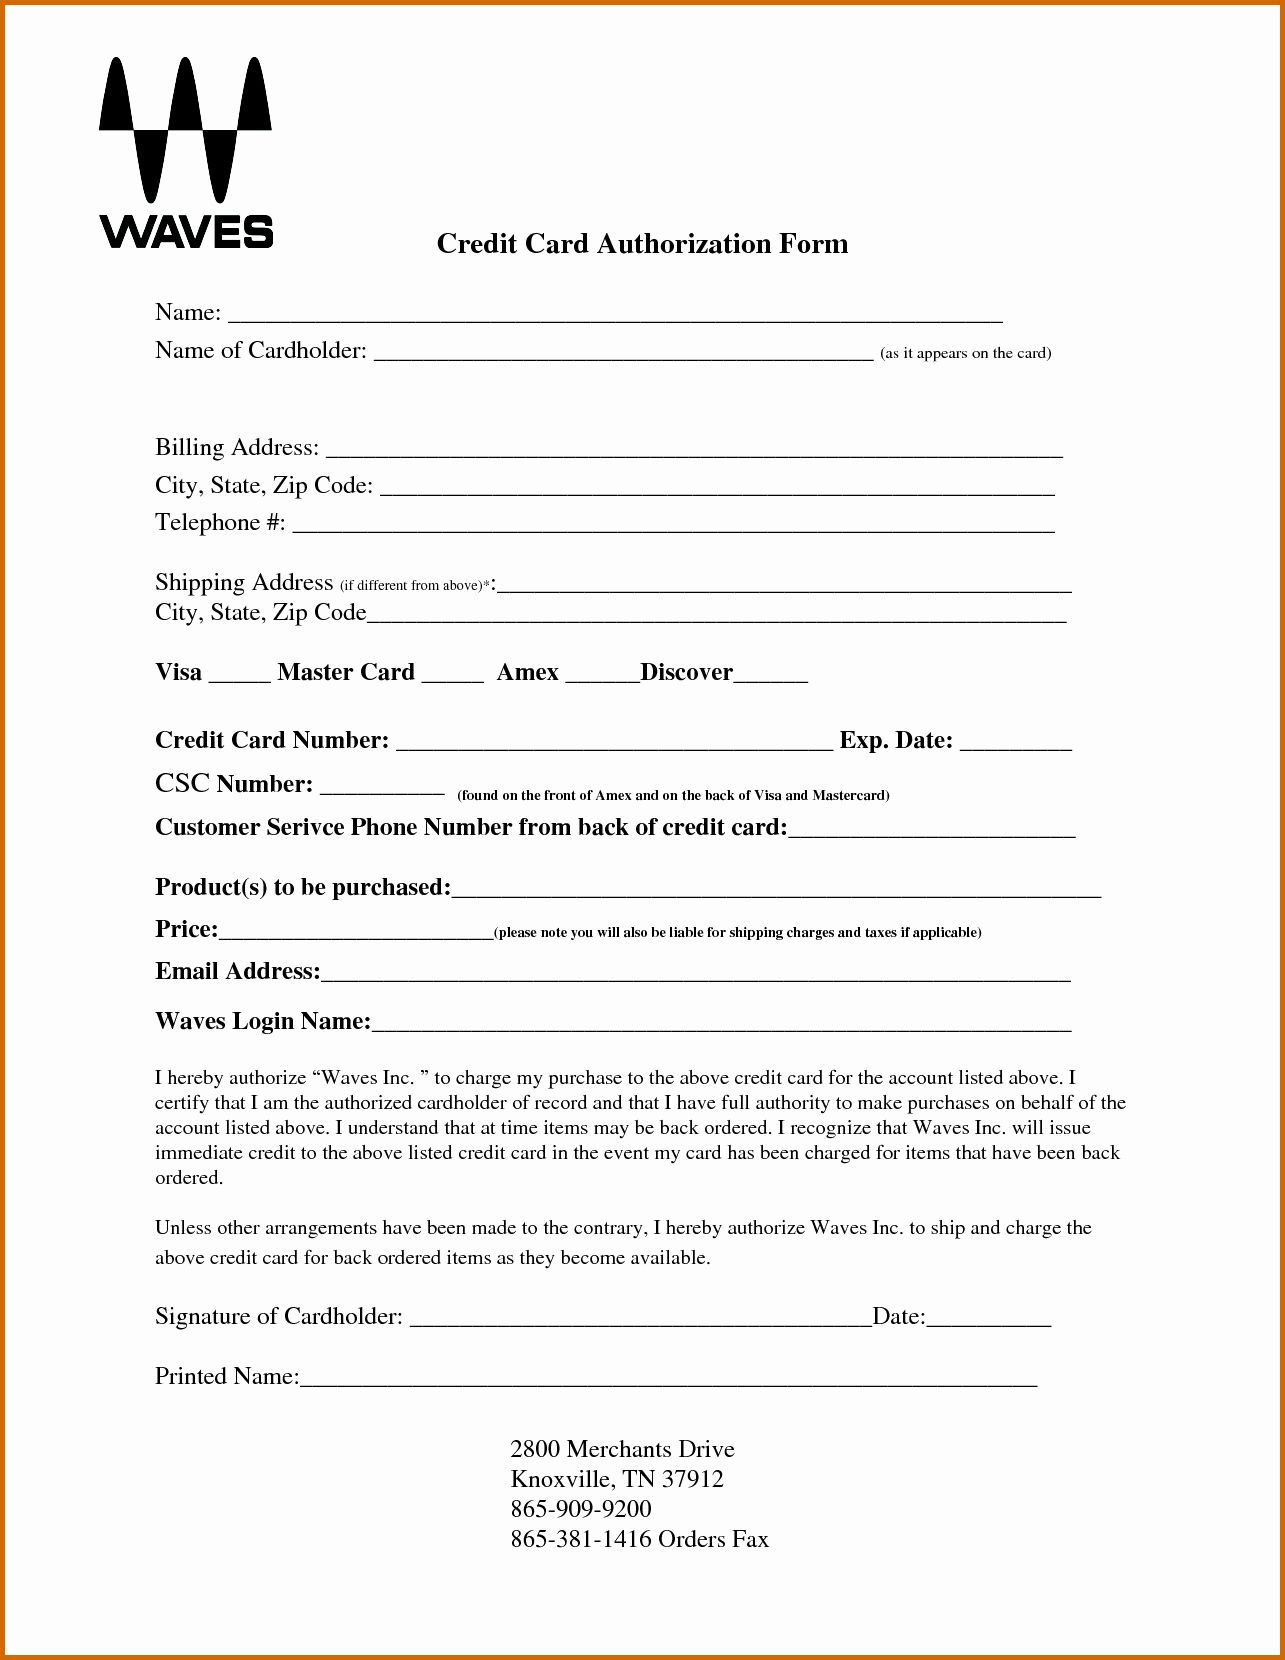 Credit Card Authorization Form Template Awesome 10 Blank Credit Card Authorization Form Pdf Corporate Credit Card Credit Card Payoff Plan Discover Credit Card